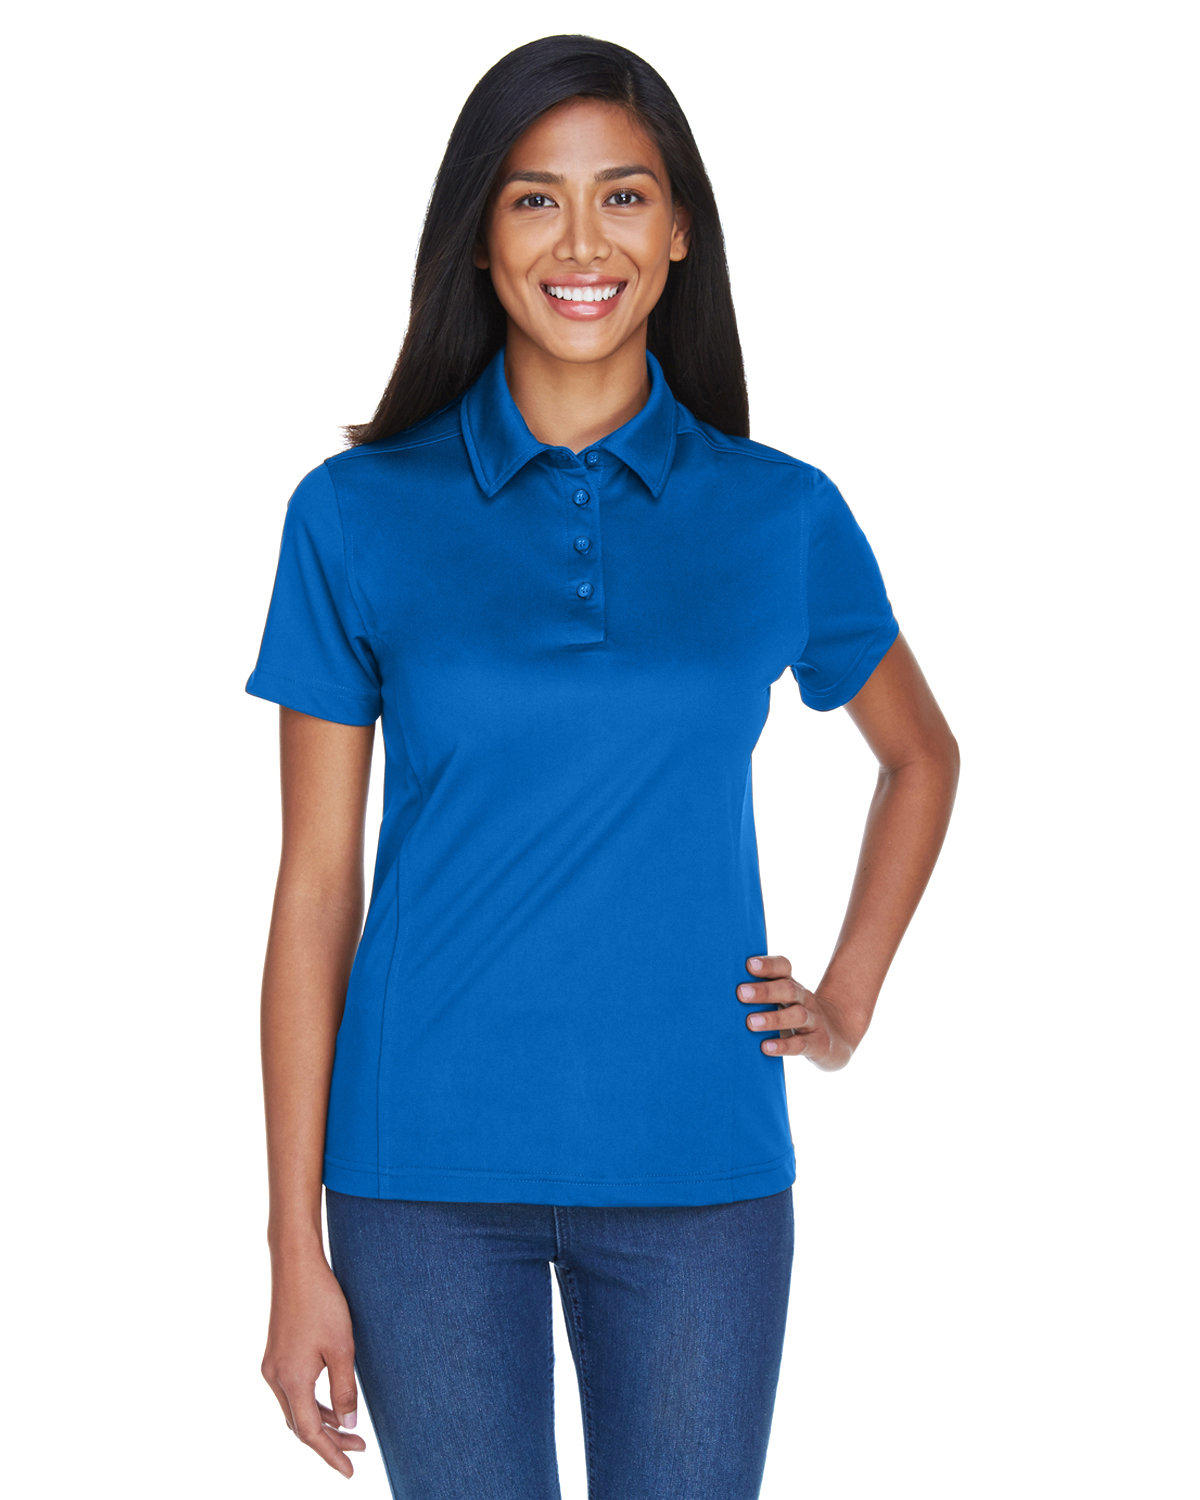 Extreme Ladies' Eperformance™ Shift Snag Protection Plus Polo TRUE ROYAL